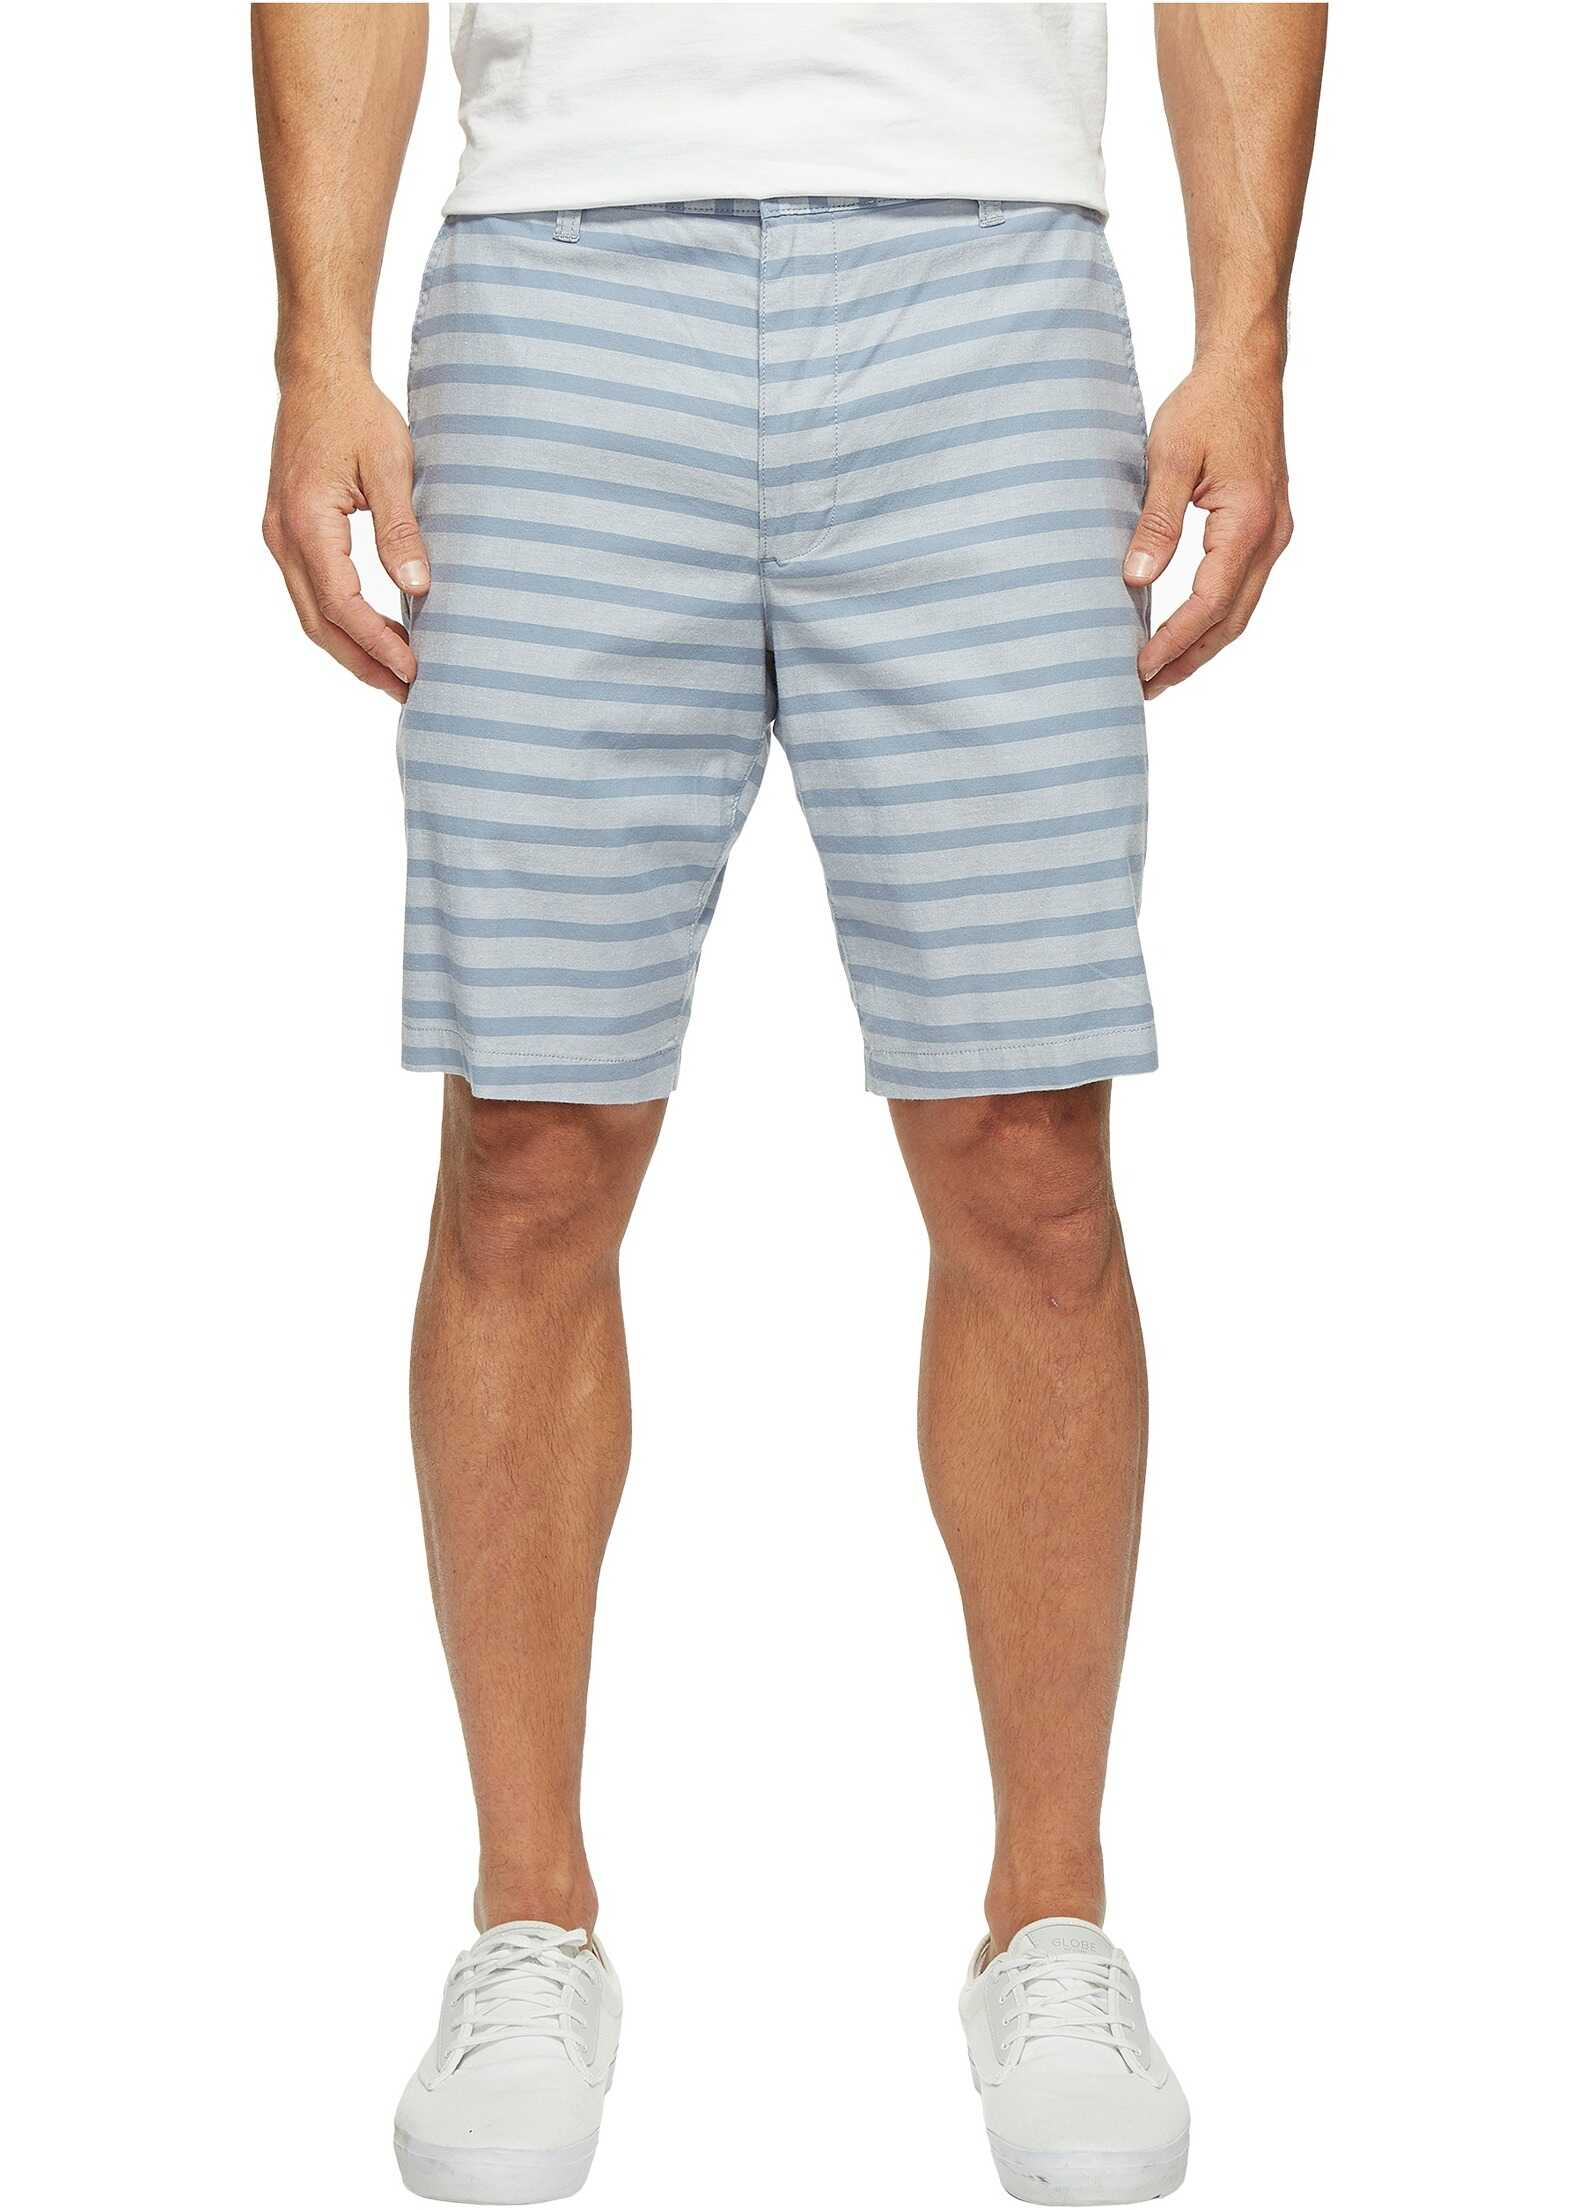 Dockers Perfect Short Classic Fit Flat Front Reyes Mok Blue Stretch